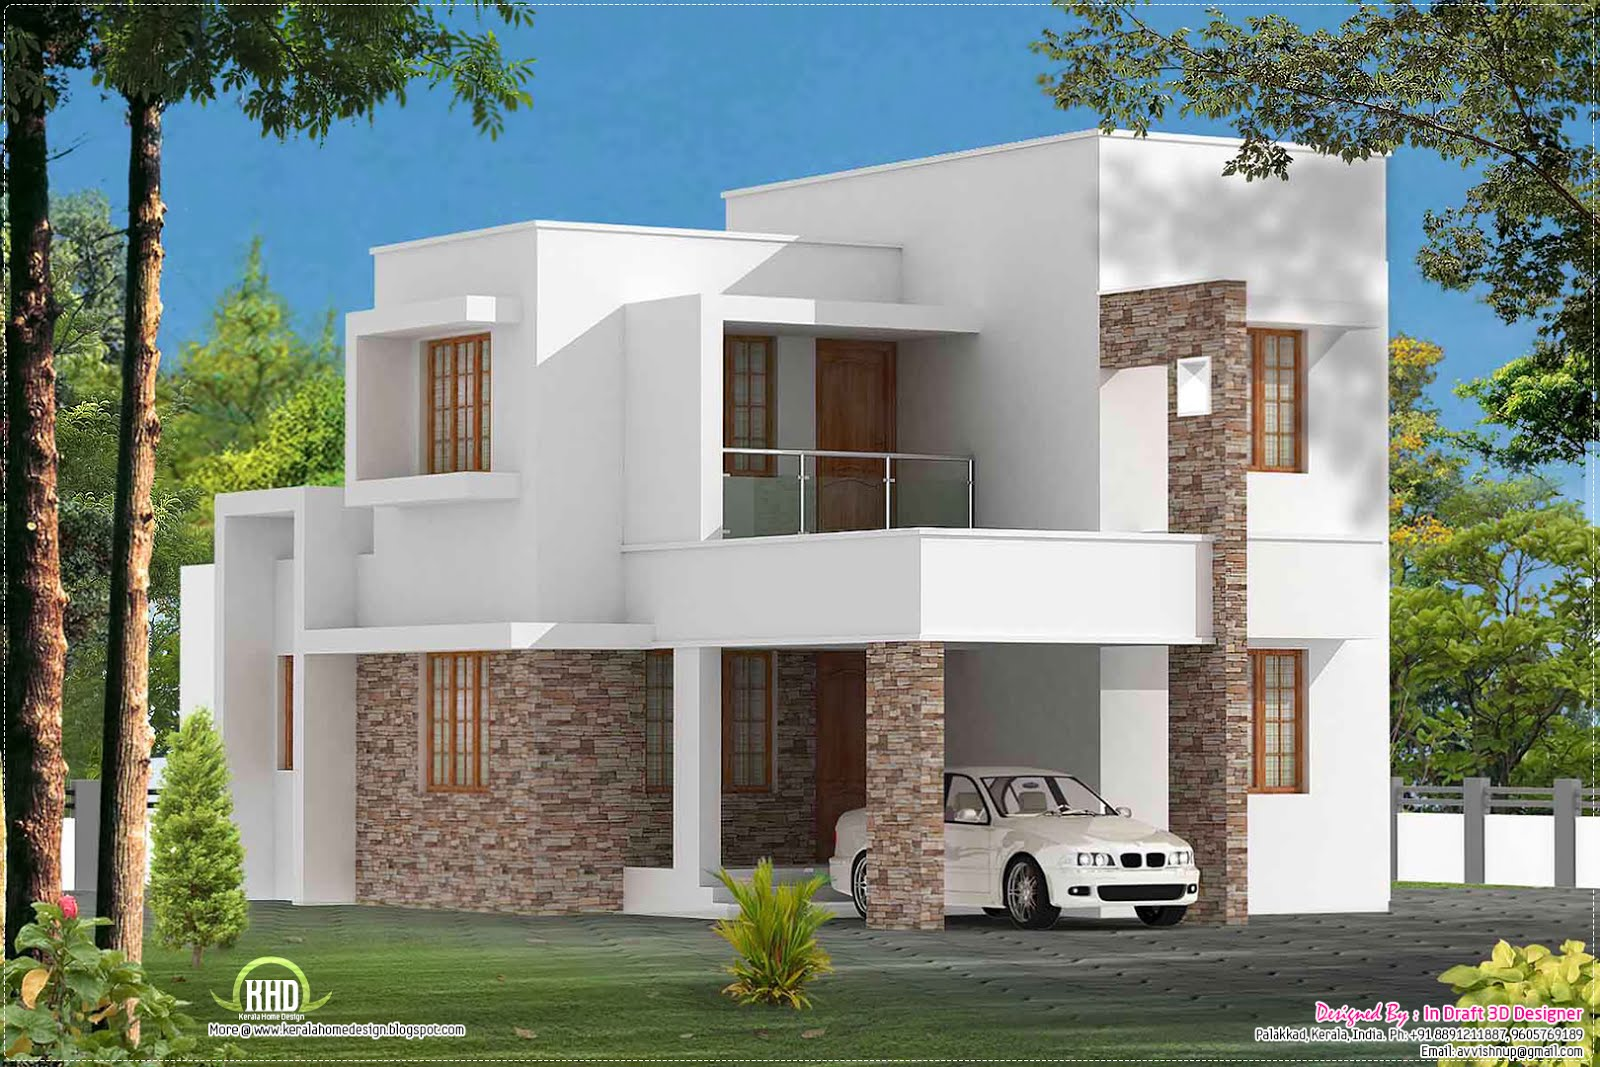 Simple 3 bed room contemporary villa kerala home design for Simple kerala home designs